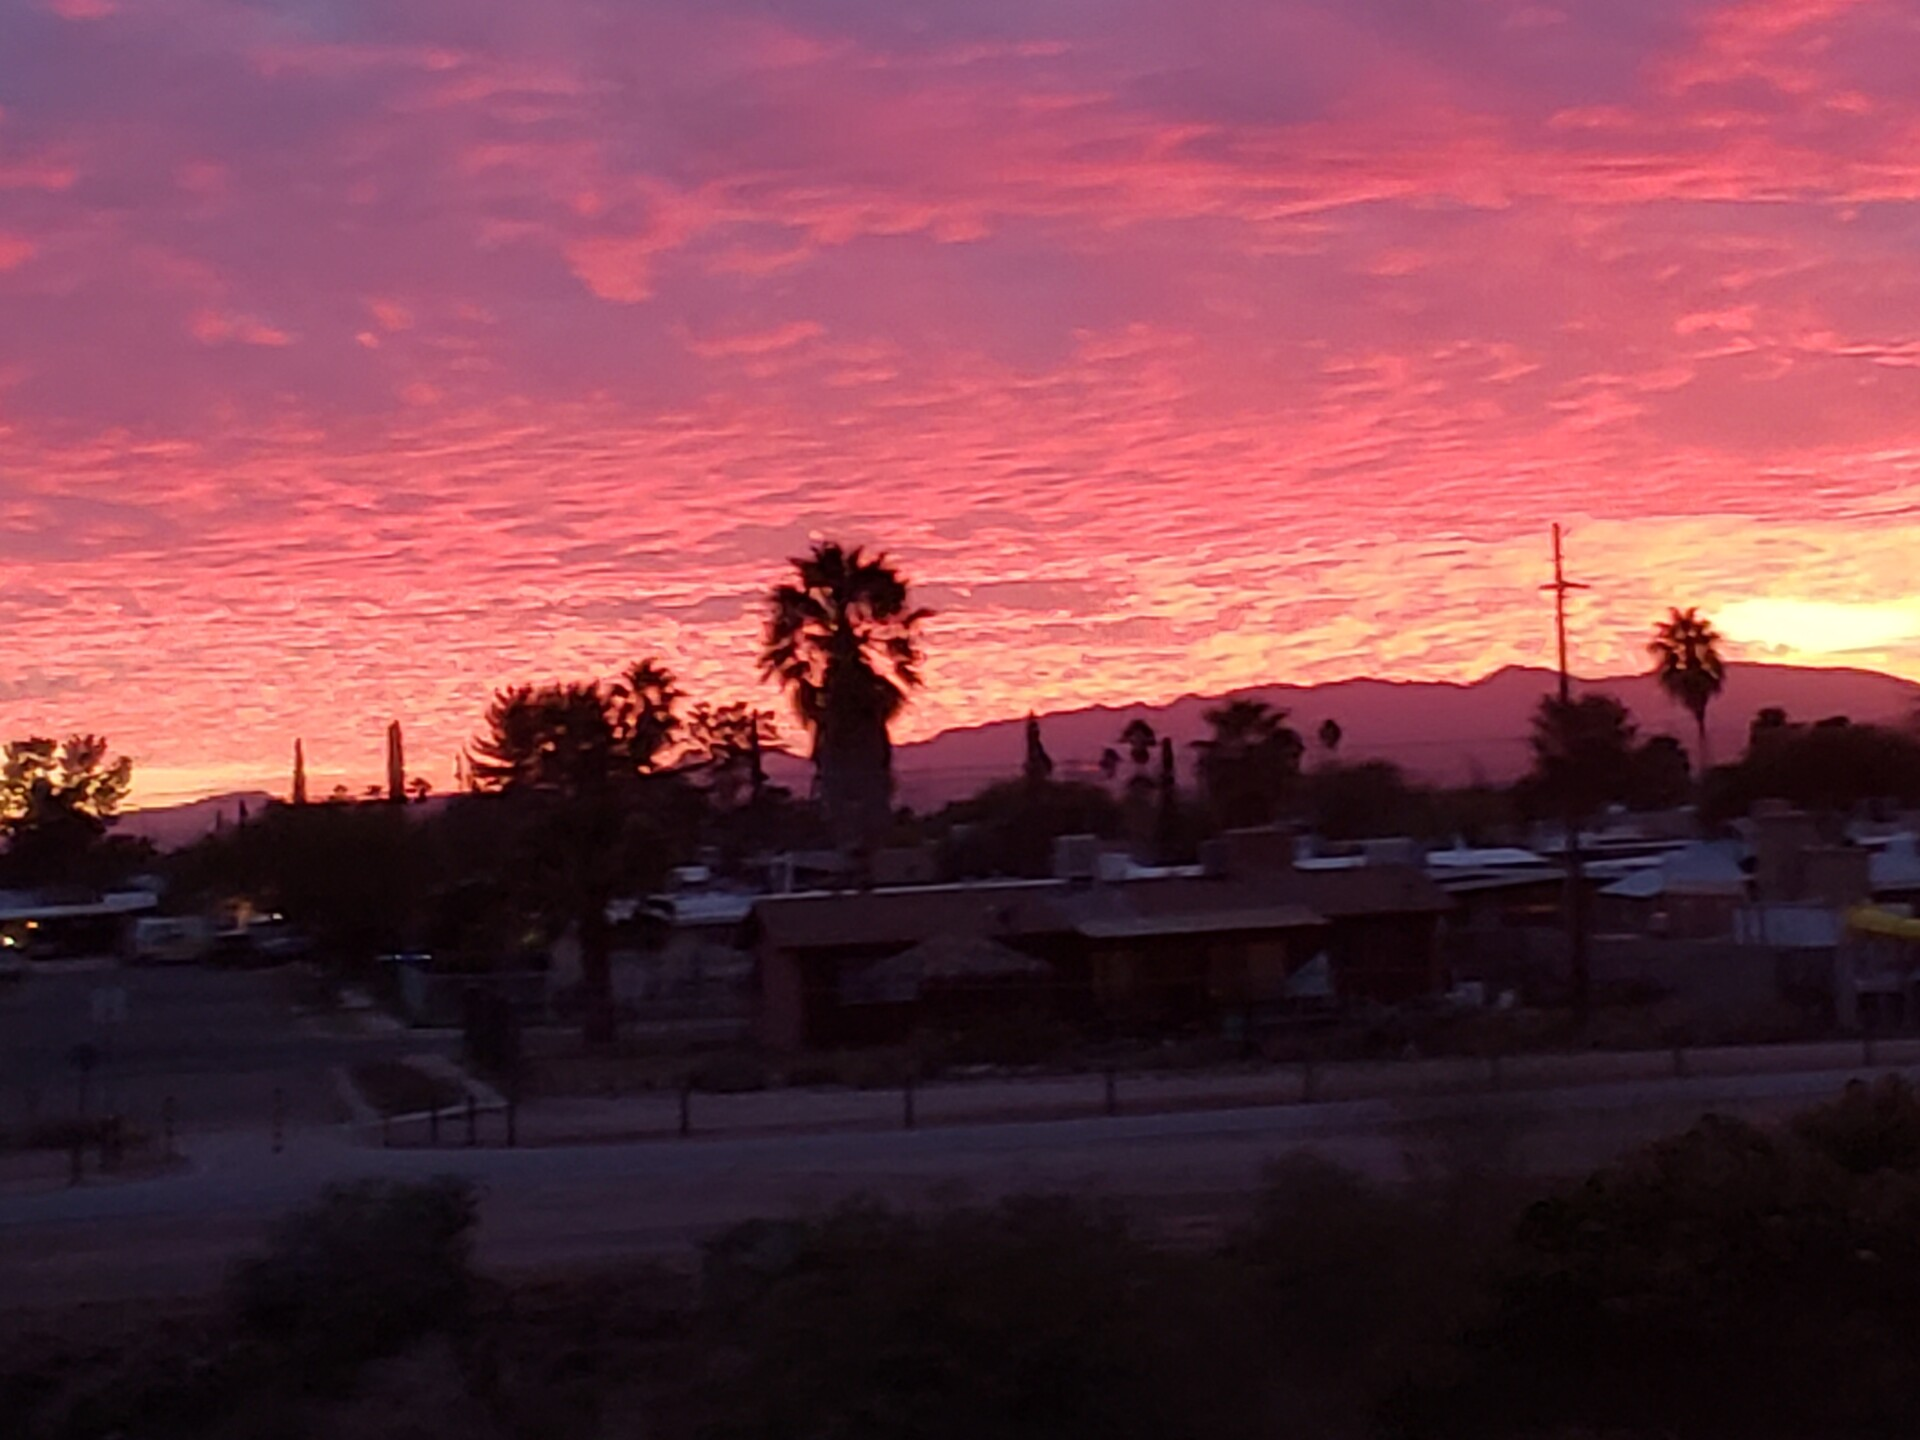 SUNSET at I-10 and Drexel by Clint Miller.jpg